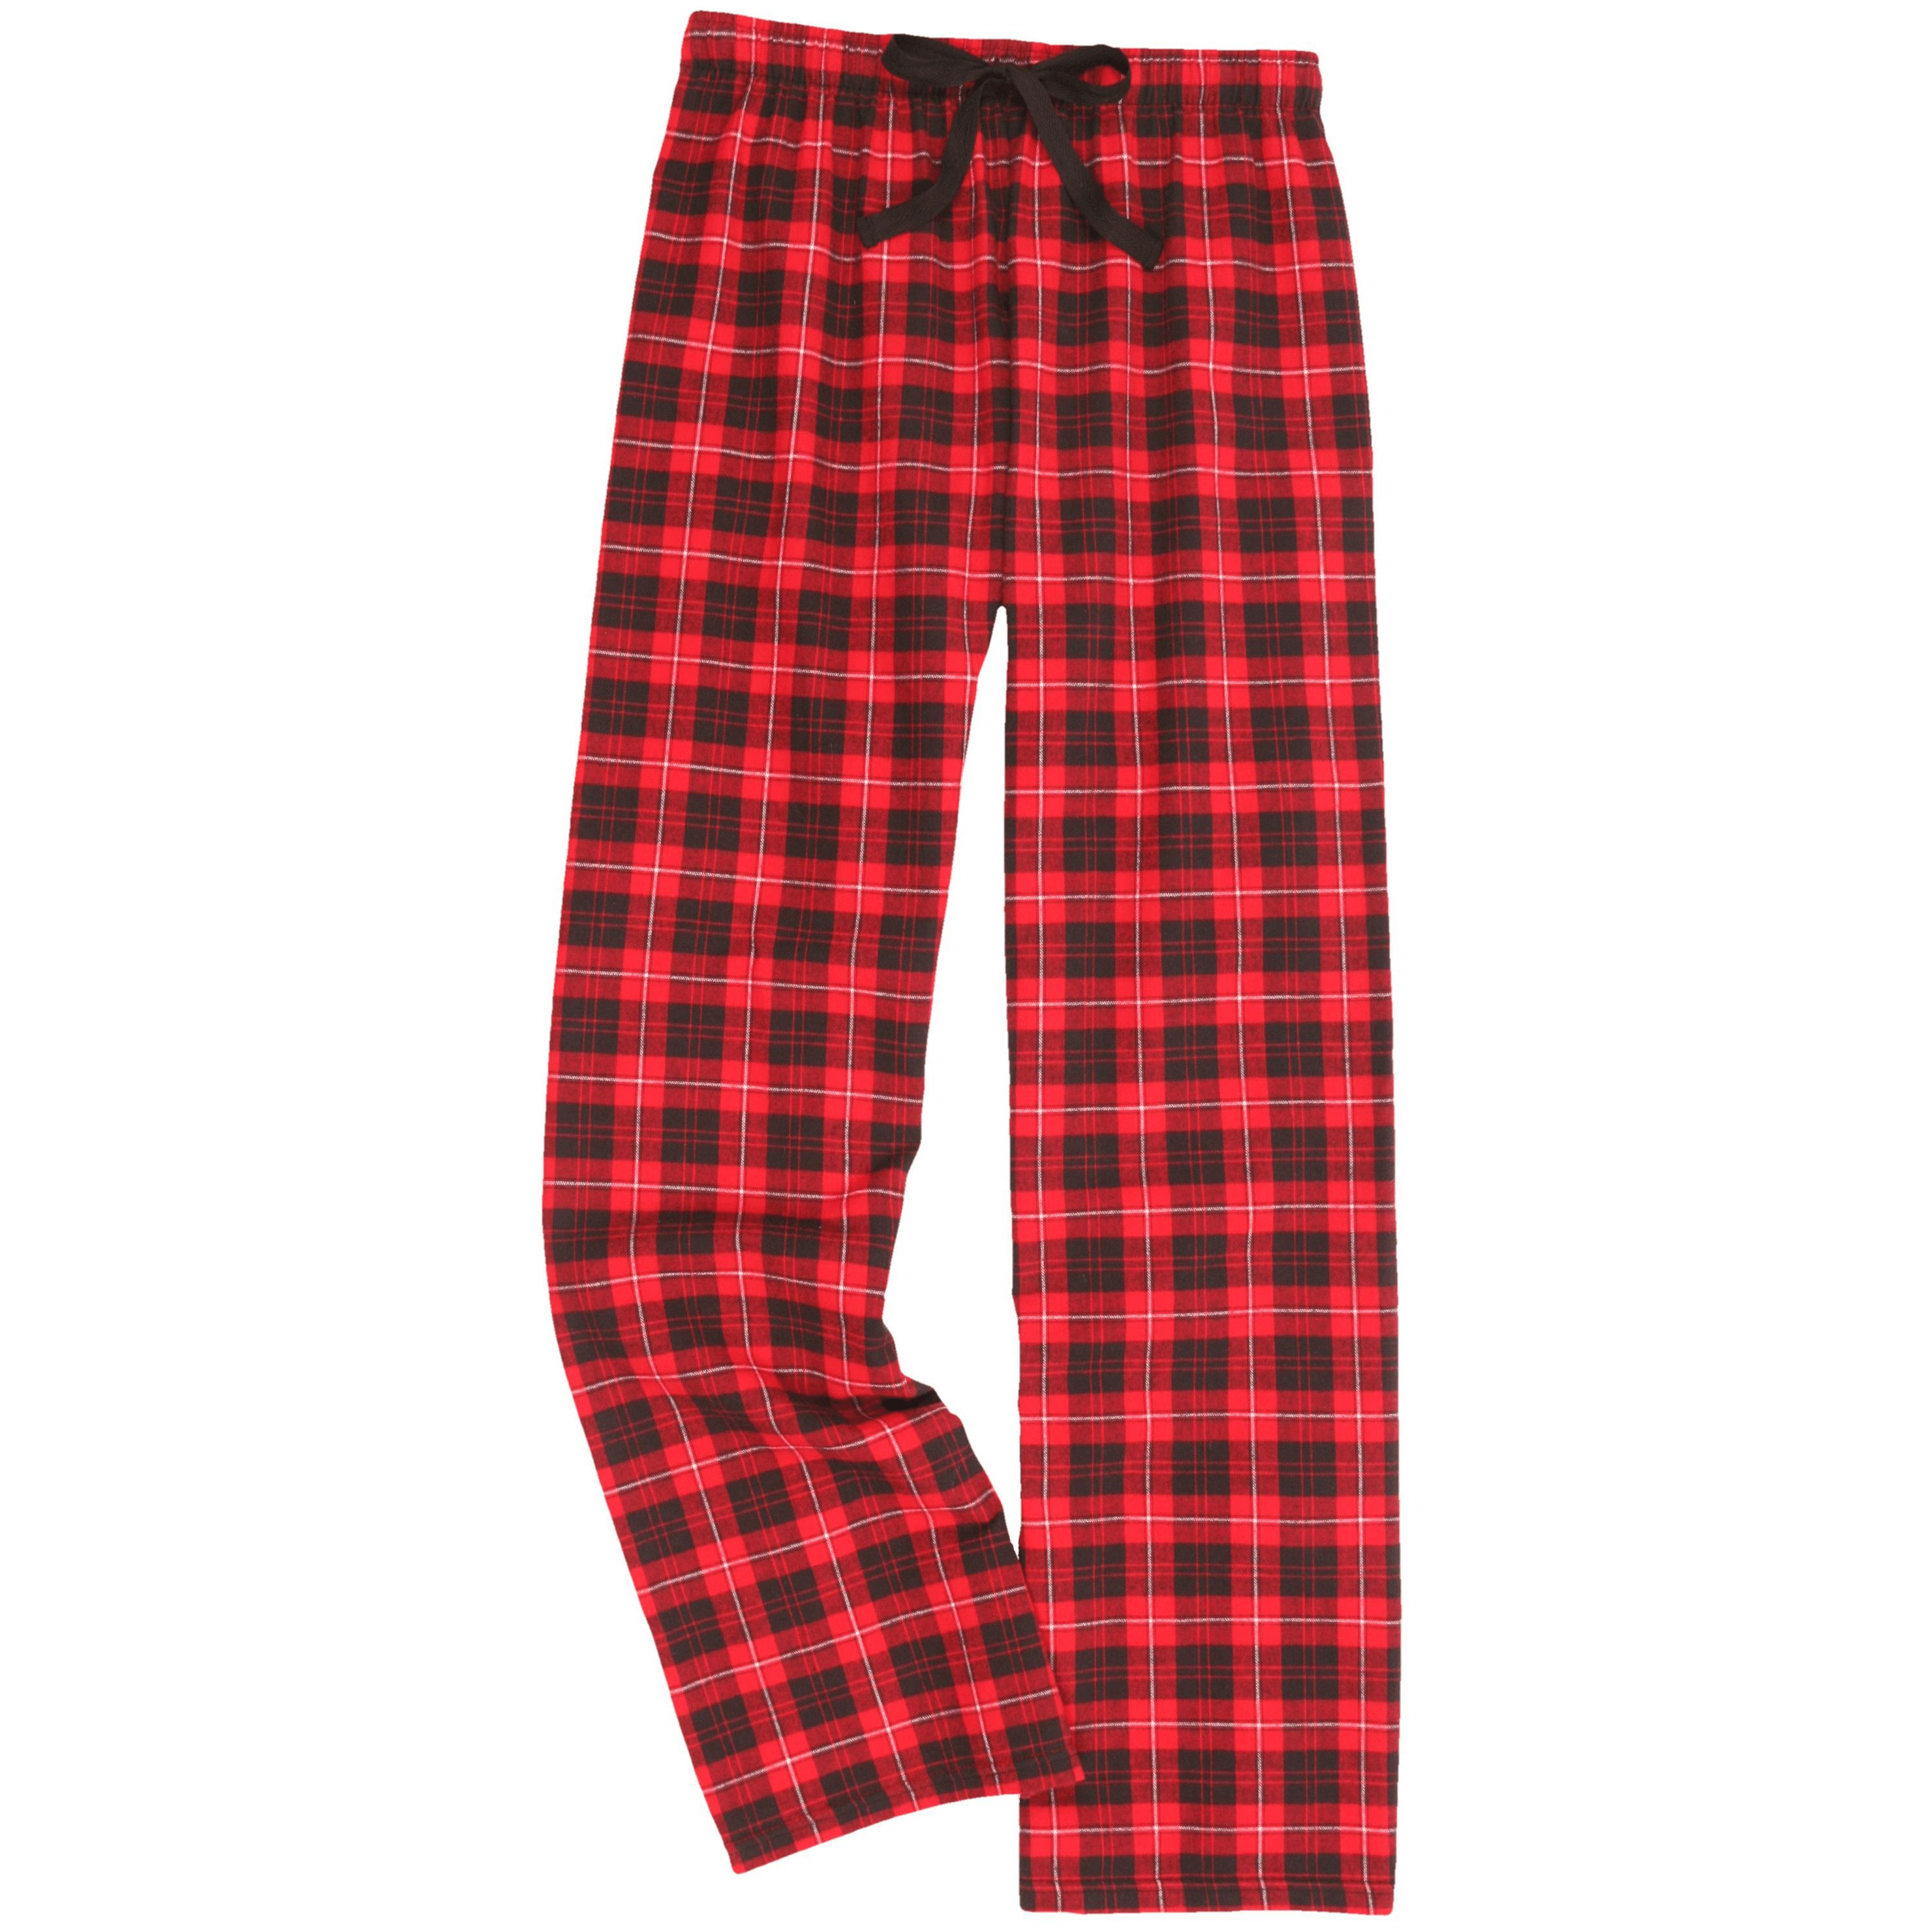 Red flannel pajama pants  Boxercraft Red and Black Flannel Pant  Products  Pinterest